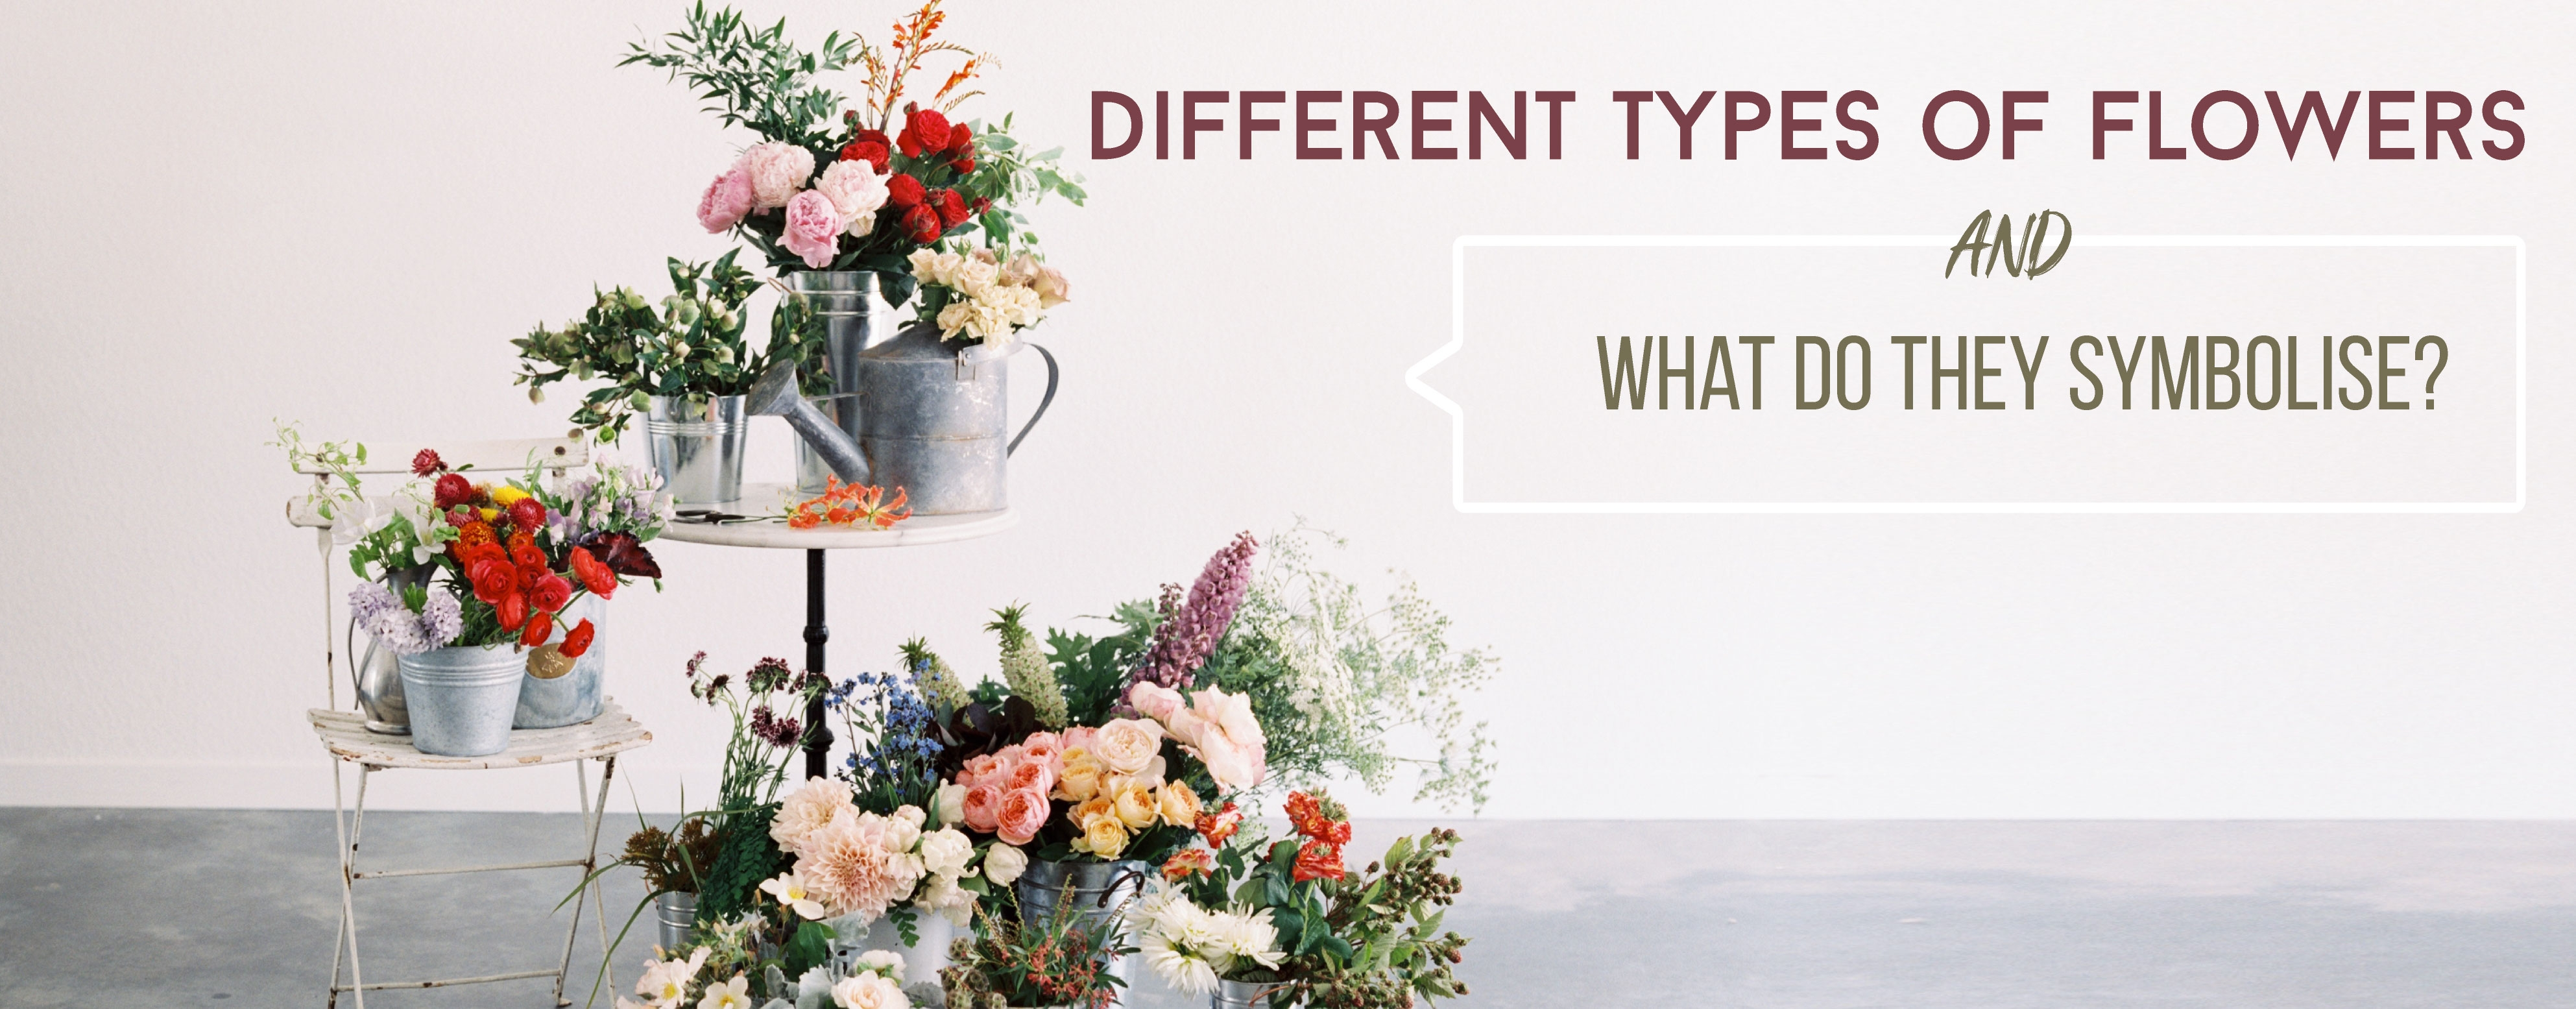 HDifferent Types of flowers and what do they symbolize?